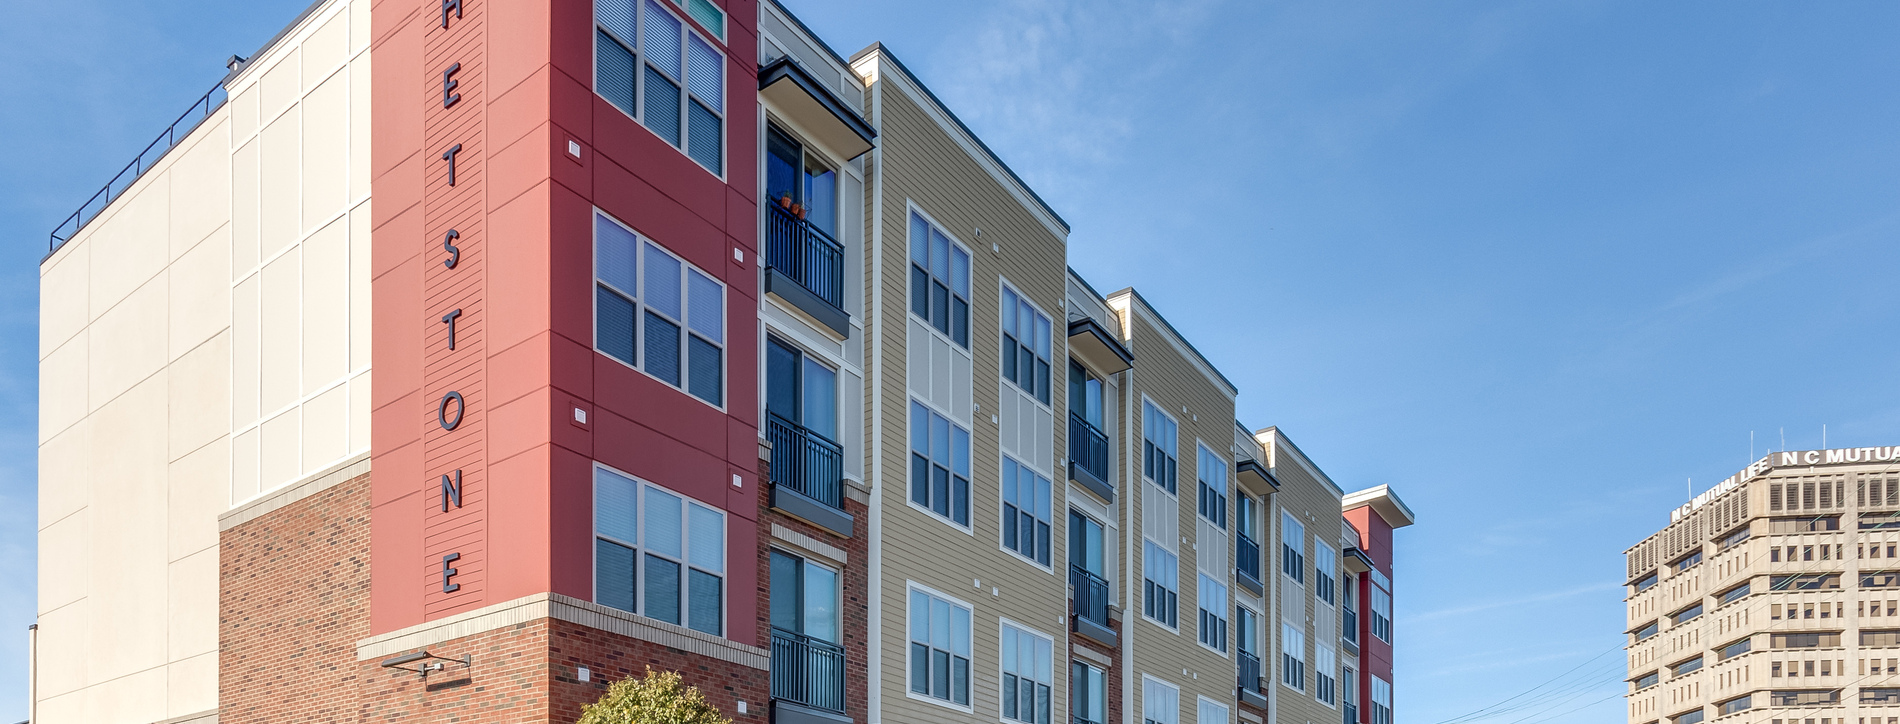 High Quality Brand New Whetstone Apartments In Durham, NC